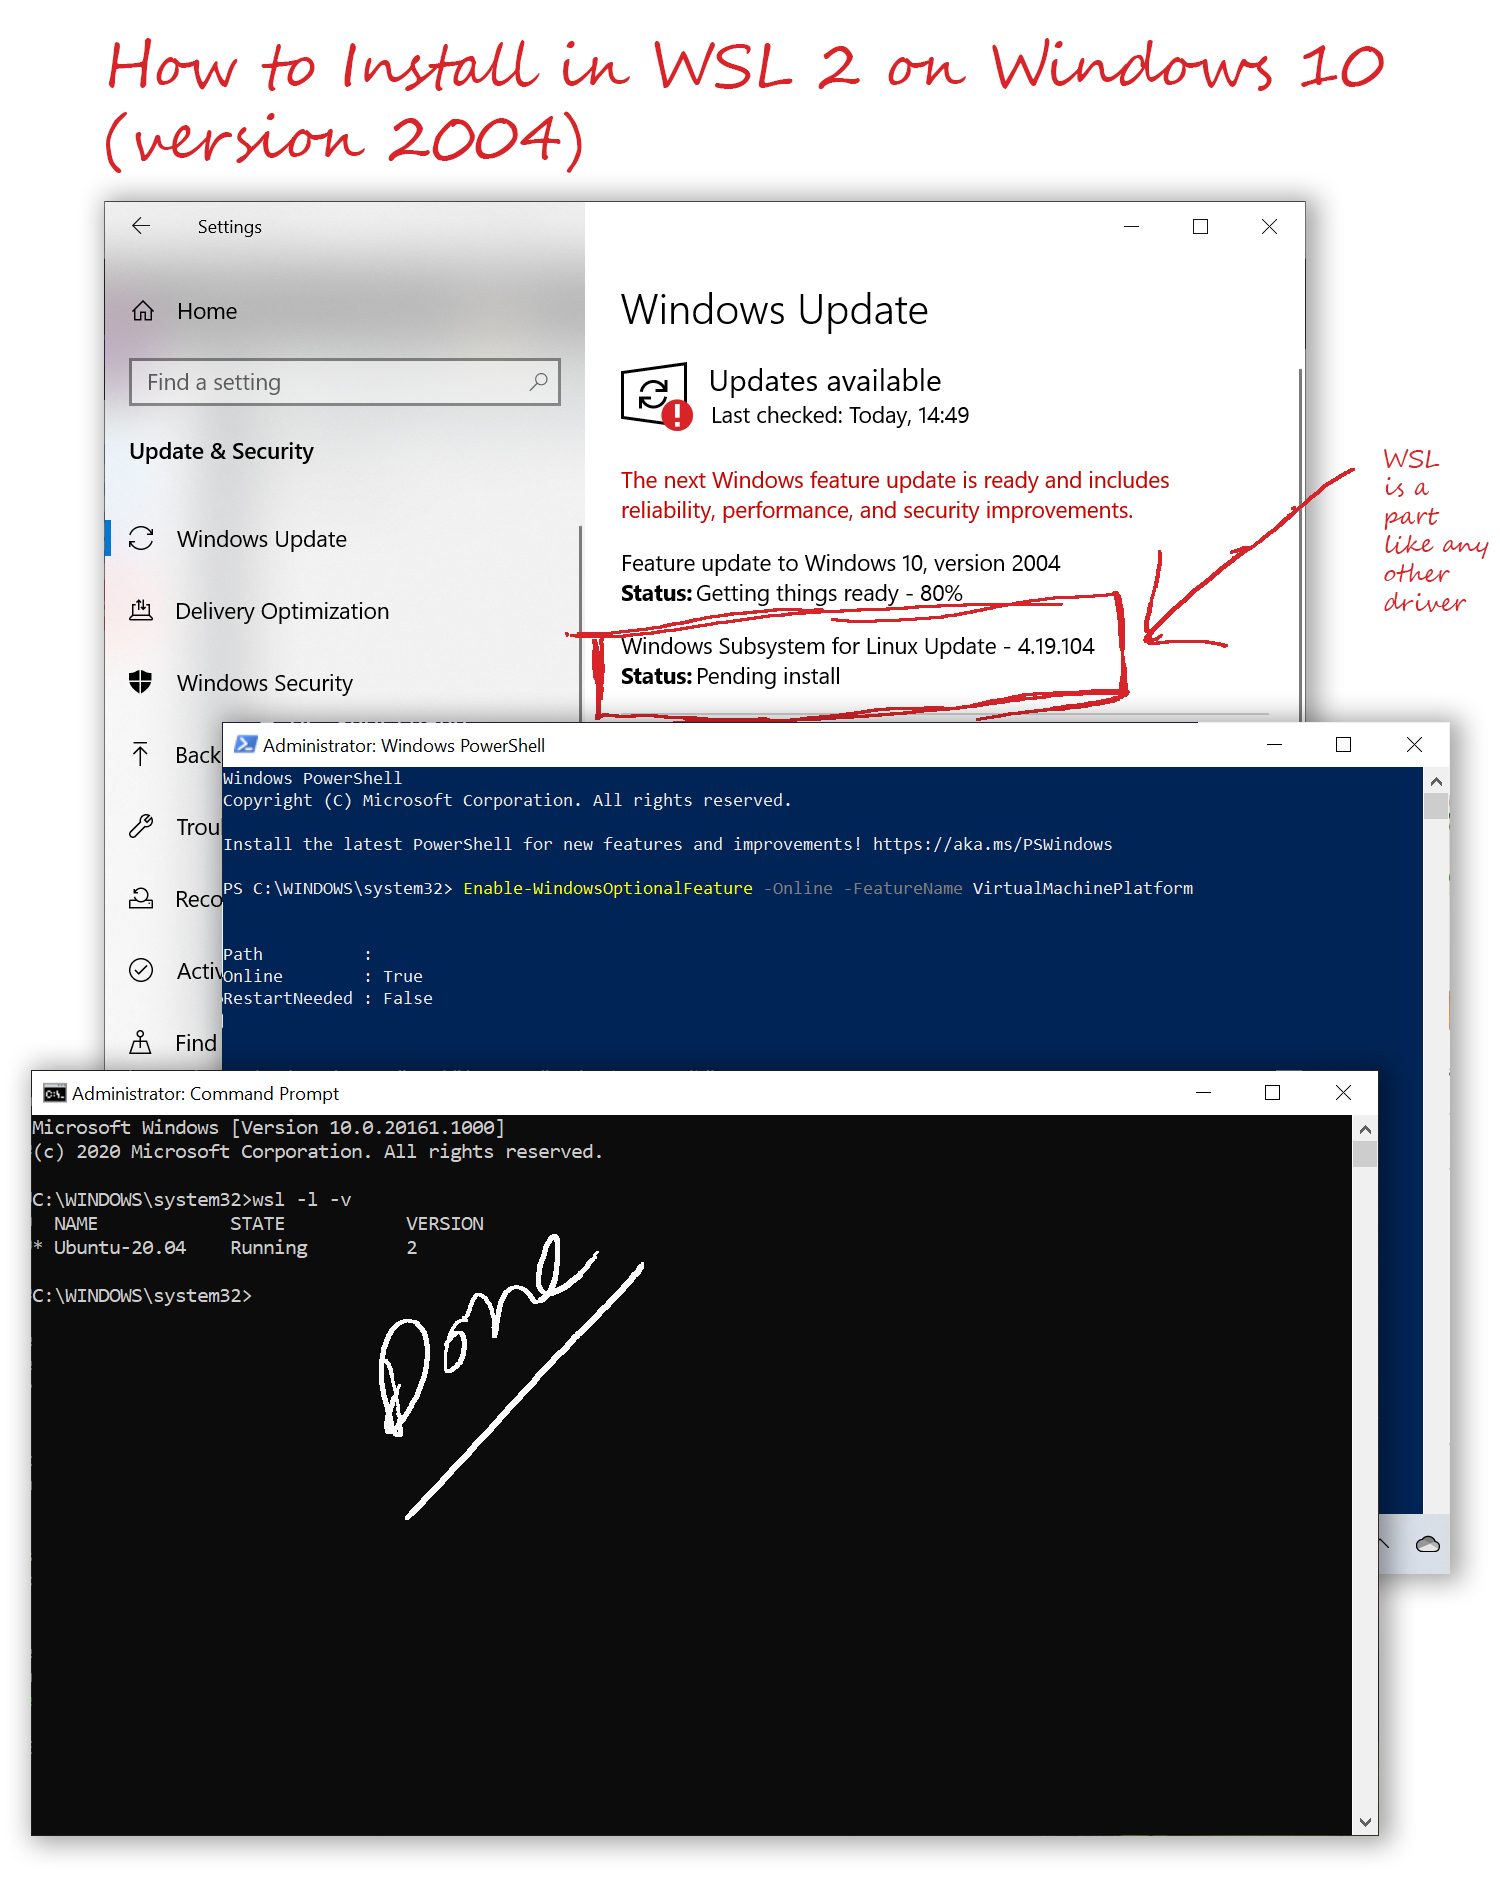 How to Install in WSL 2 on Windows 10 version 2004